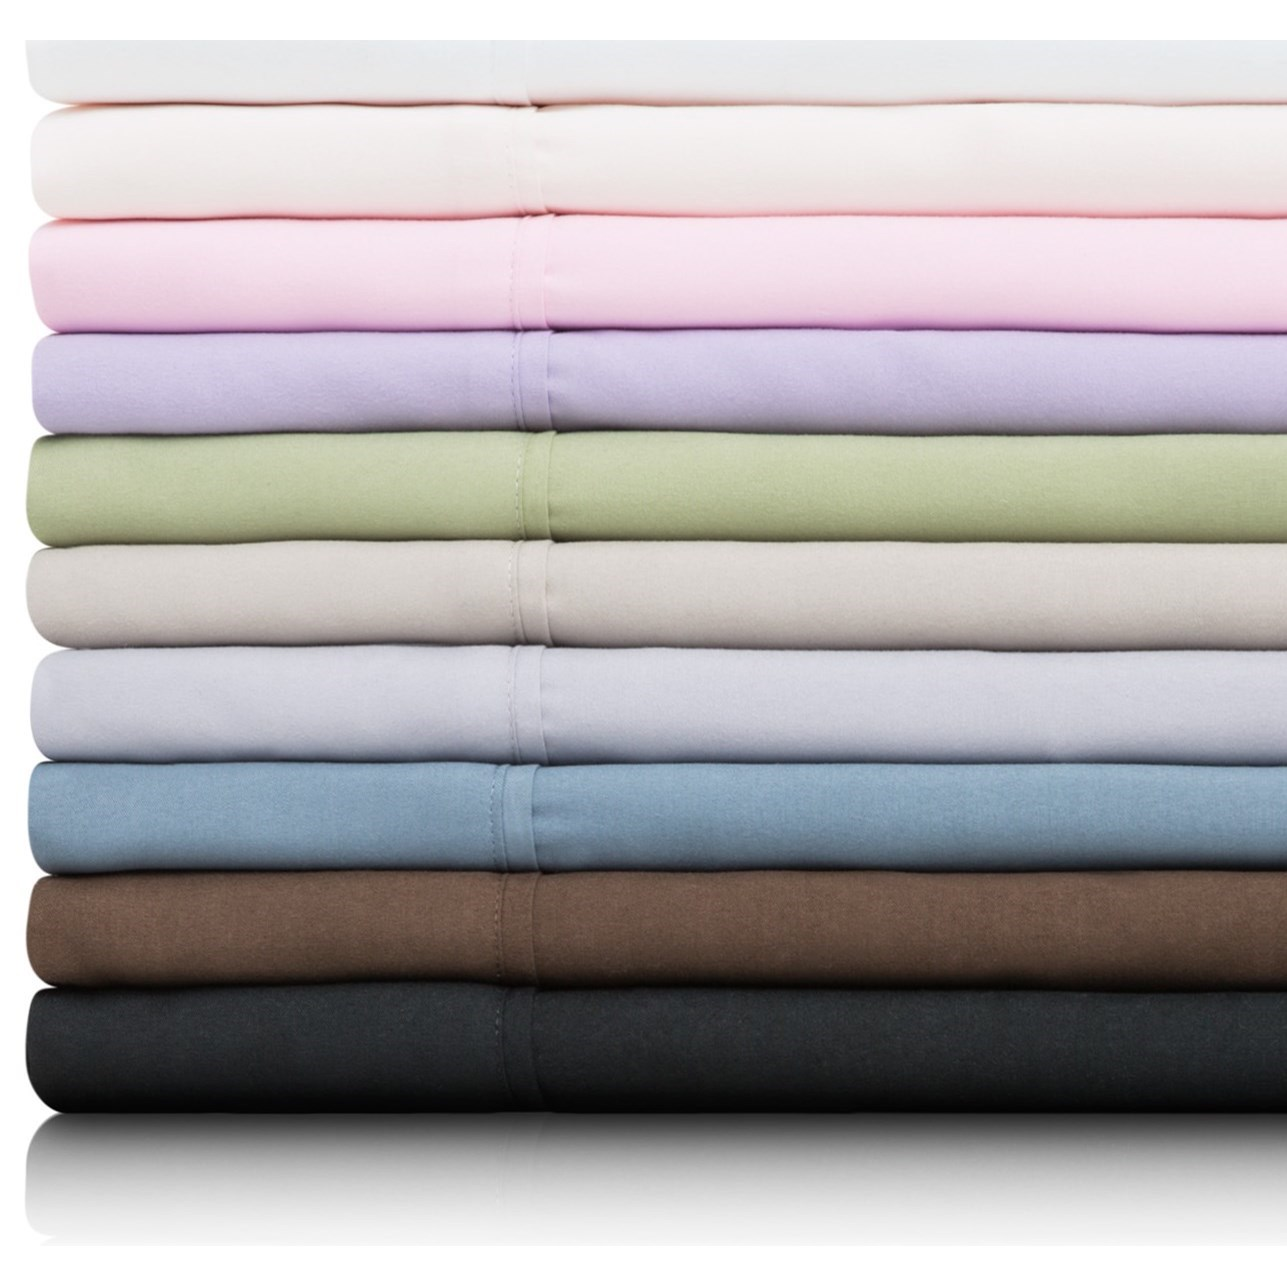 Brushed Microfiber Cot Woven™ Brushed Microfiber Cot Sheet Set by Malouf at Furniture and ApplianceMart